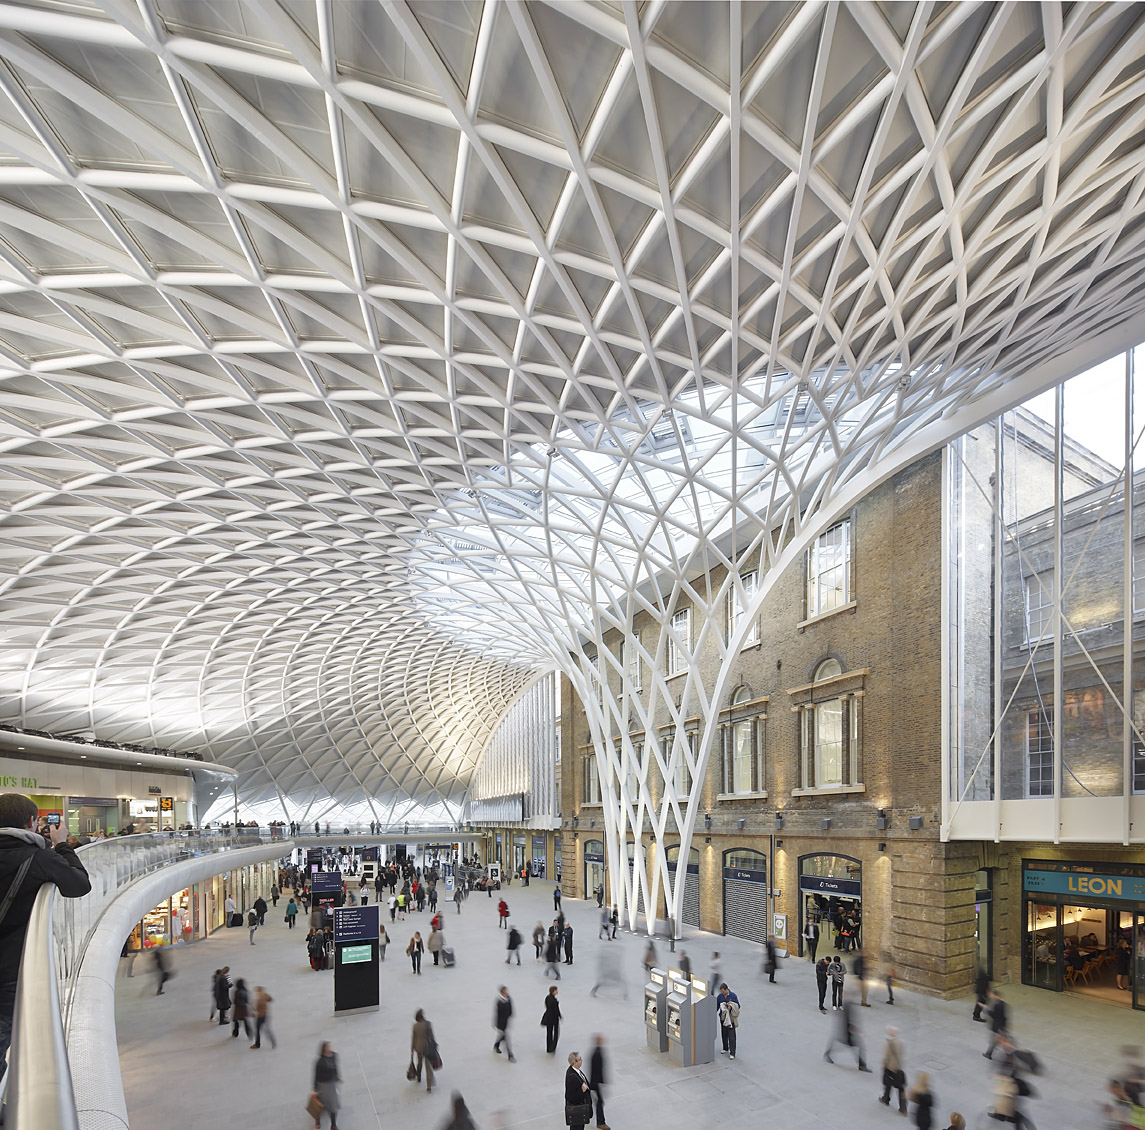 Kings_Cross_Open_to_Public_004 (2)